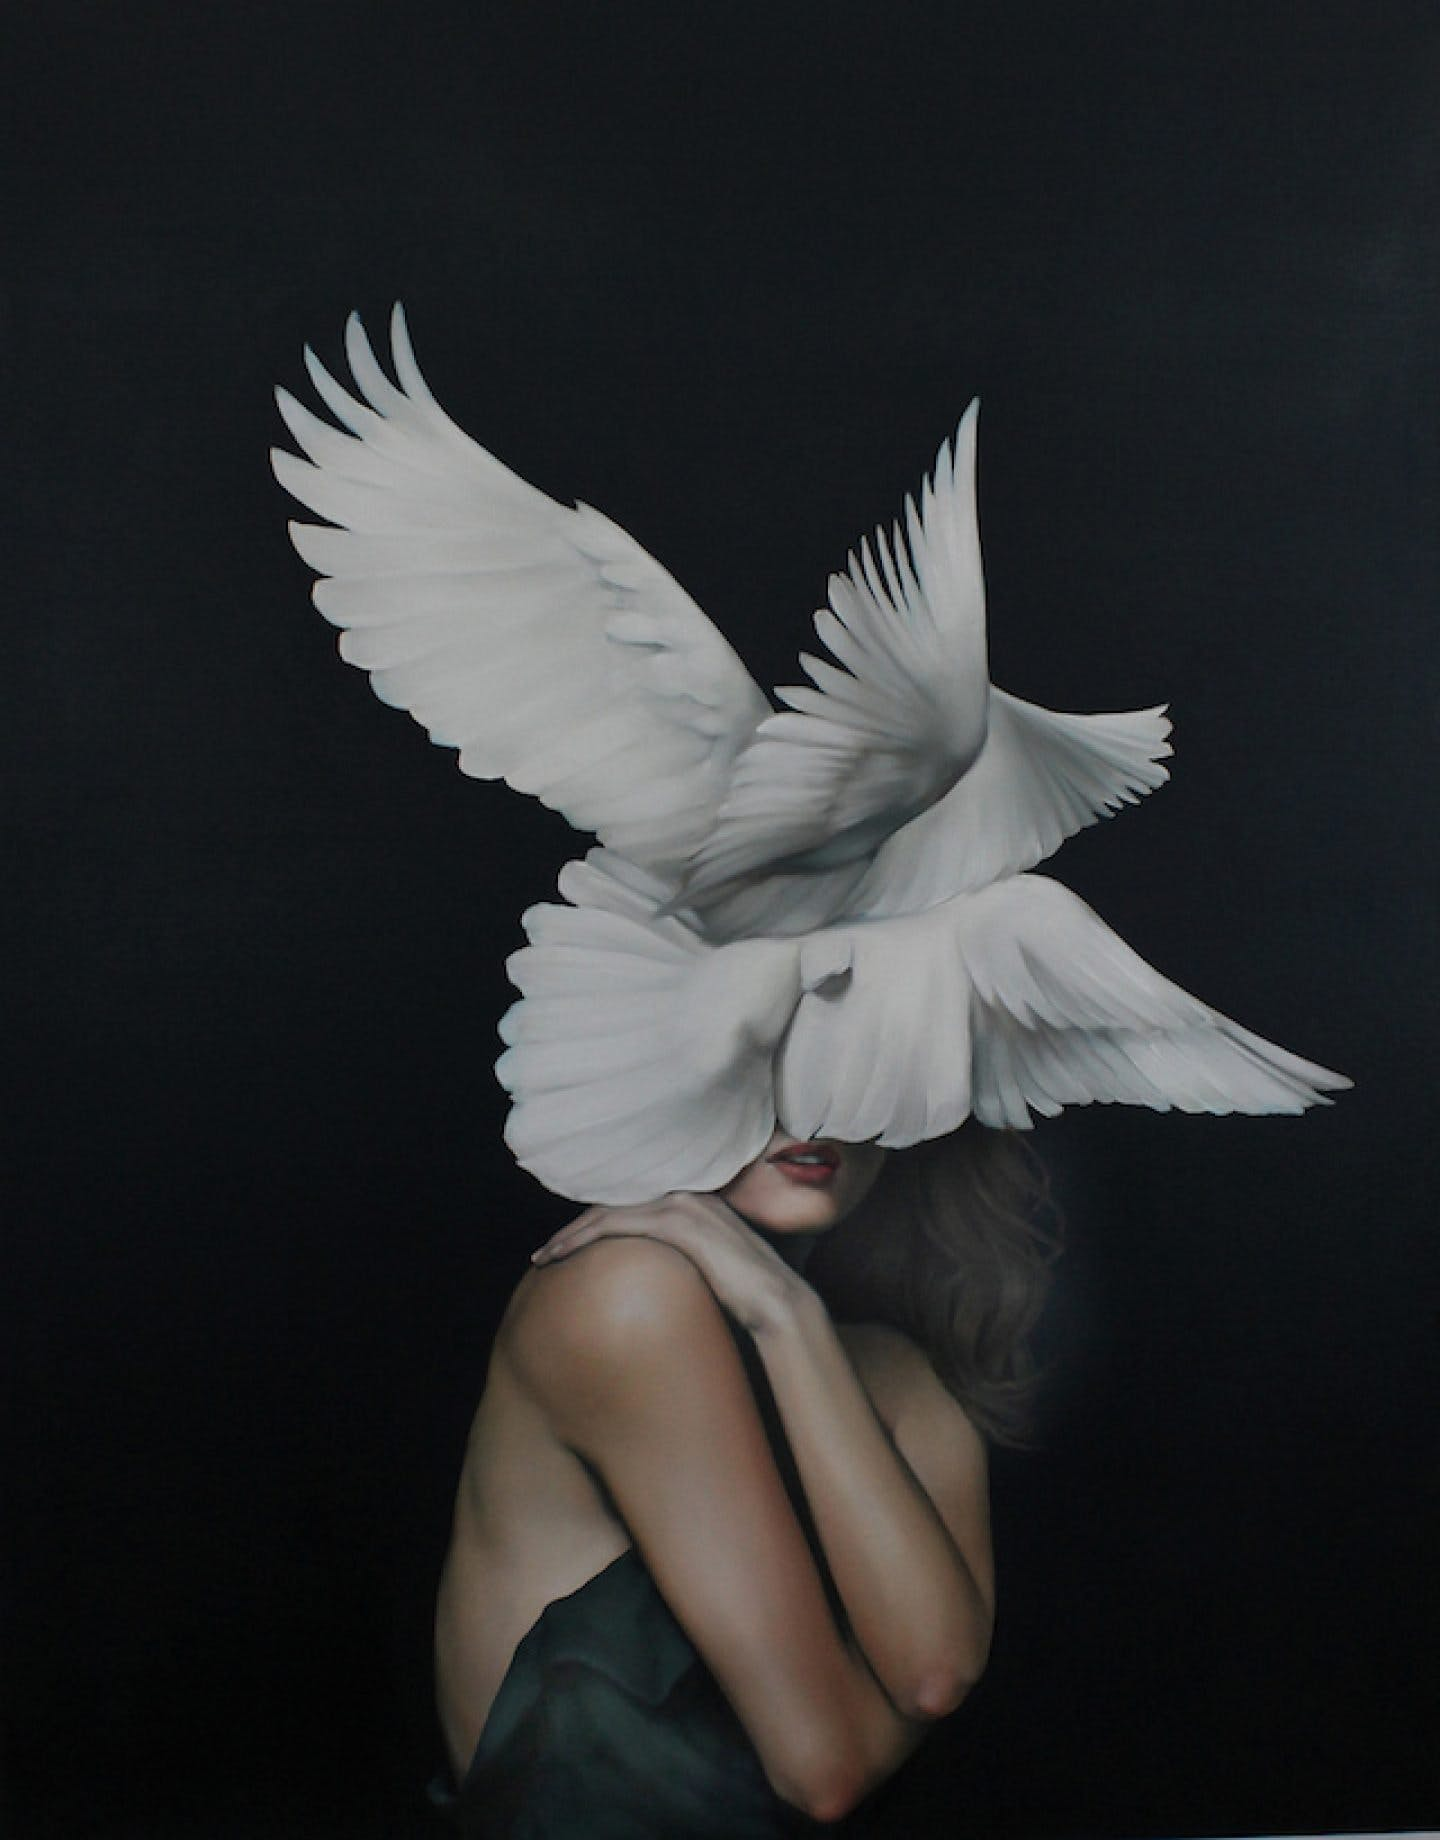 AMY JUDD'S MYTHOLOGICAL WOMEN